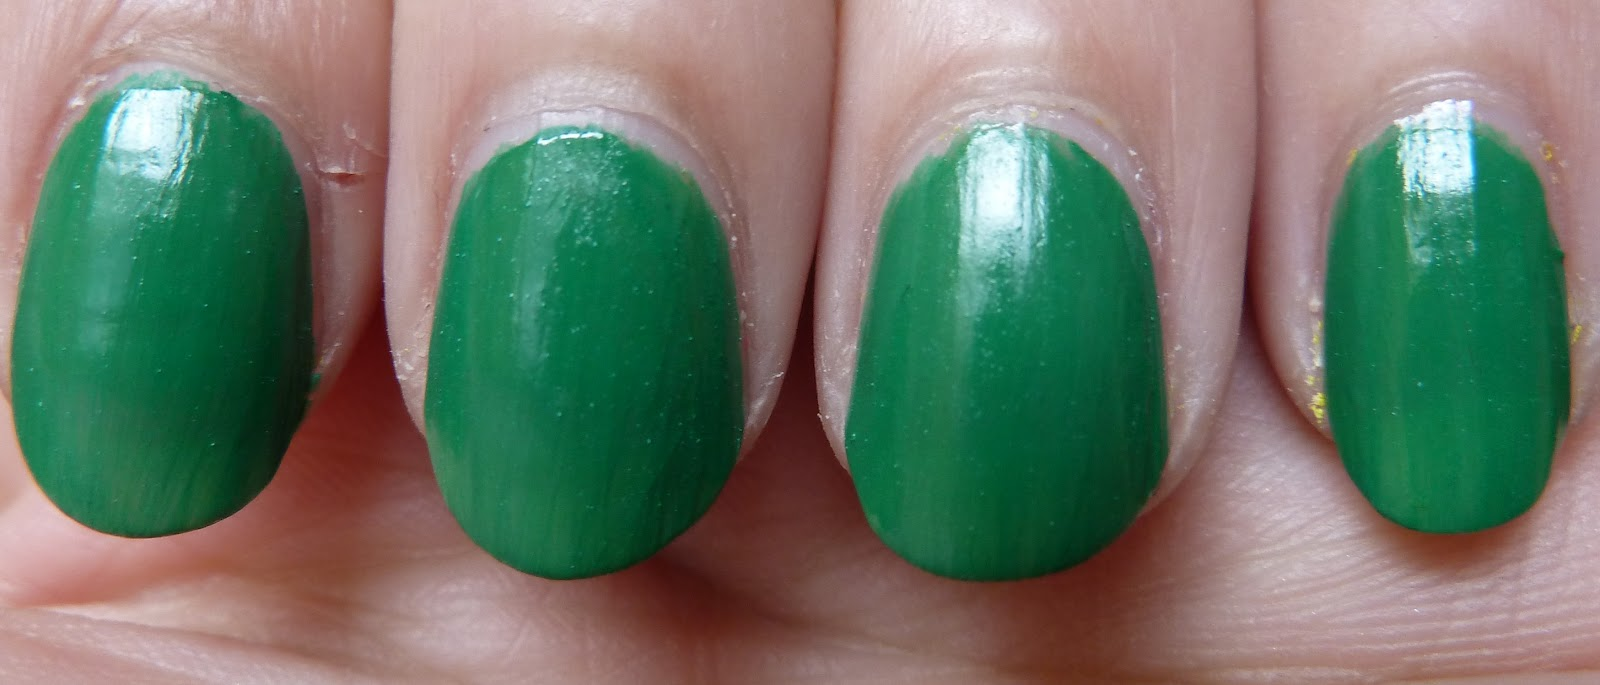 NailsByStephanie: Acrylic Paint As Nail Polish